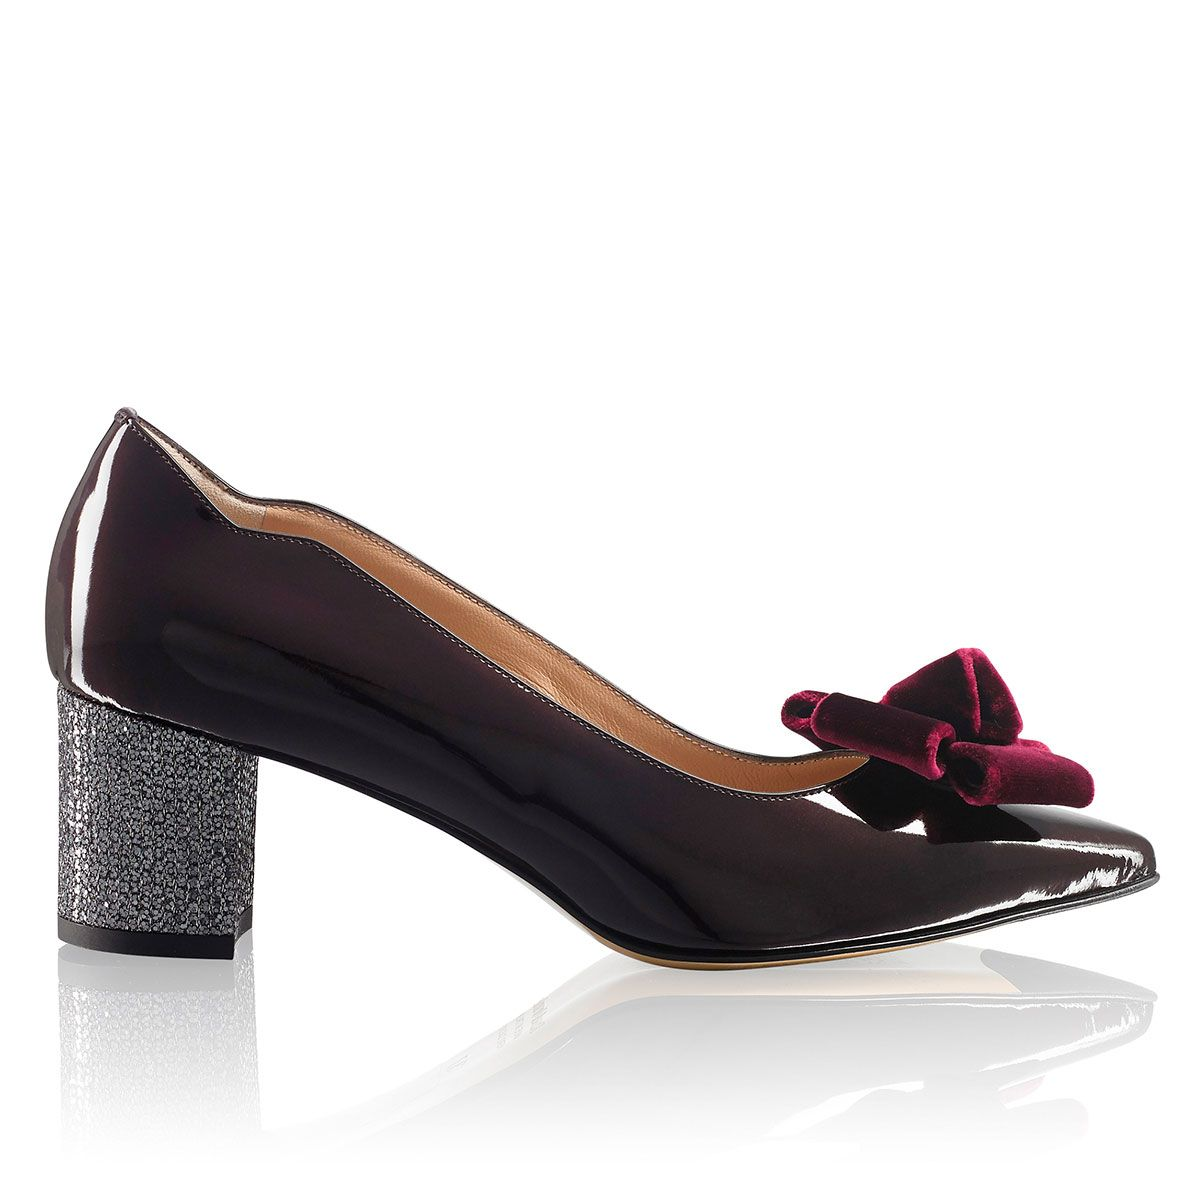 russell and bromley ladies shoes